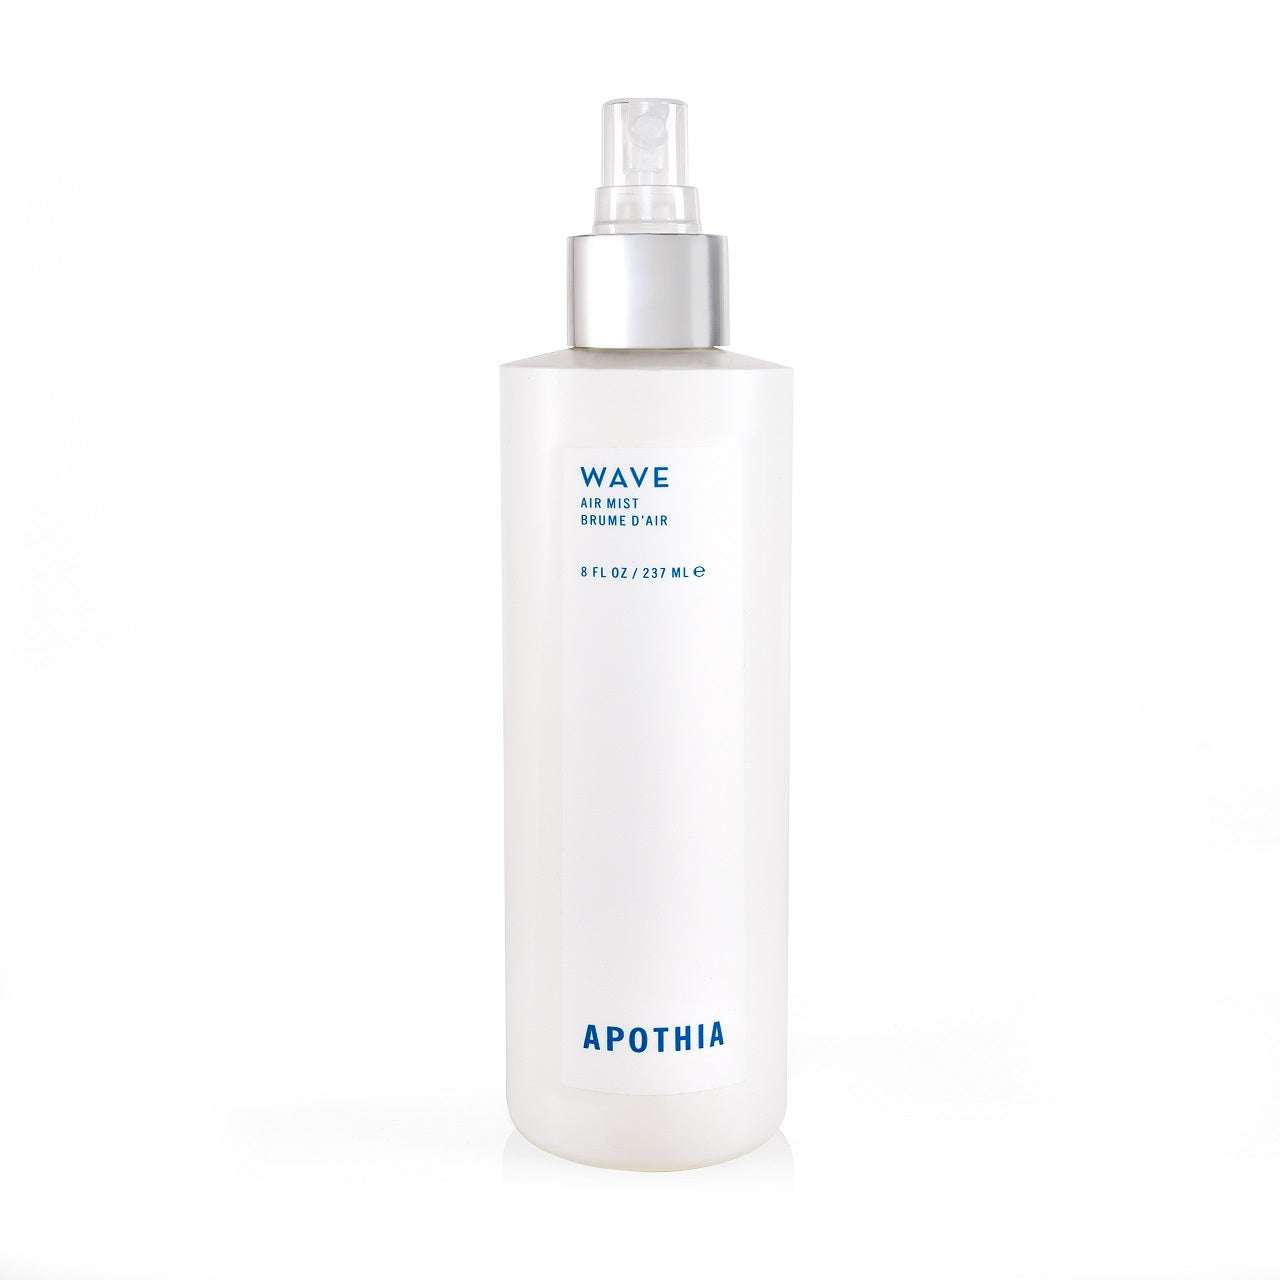 APOTHIA Air Mist - Wave